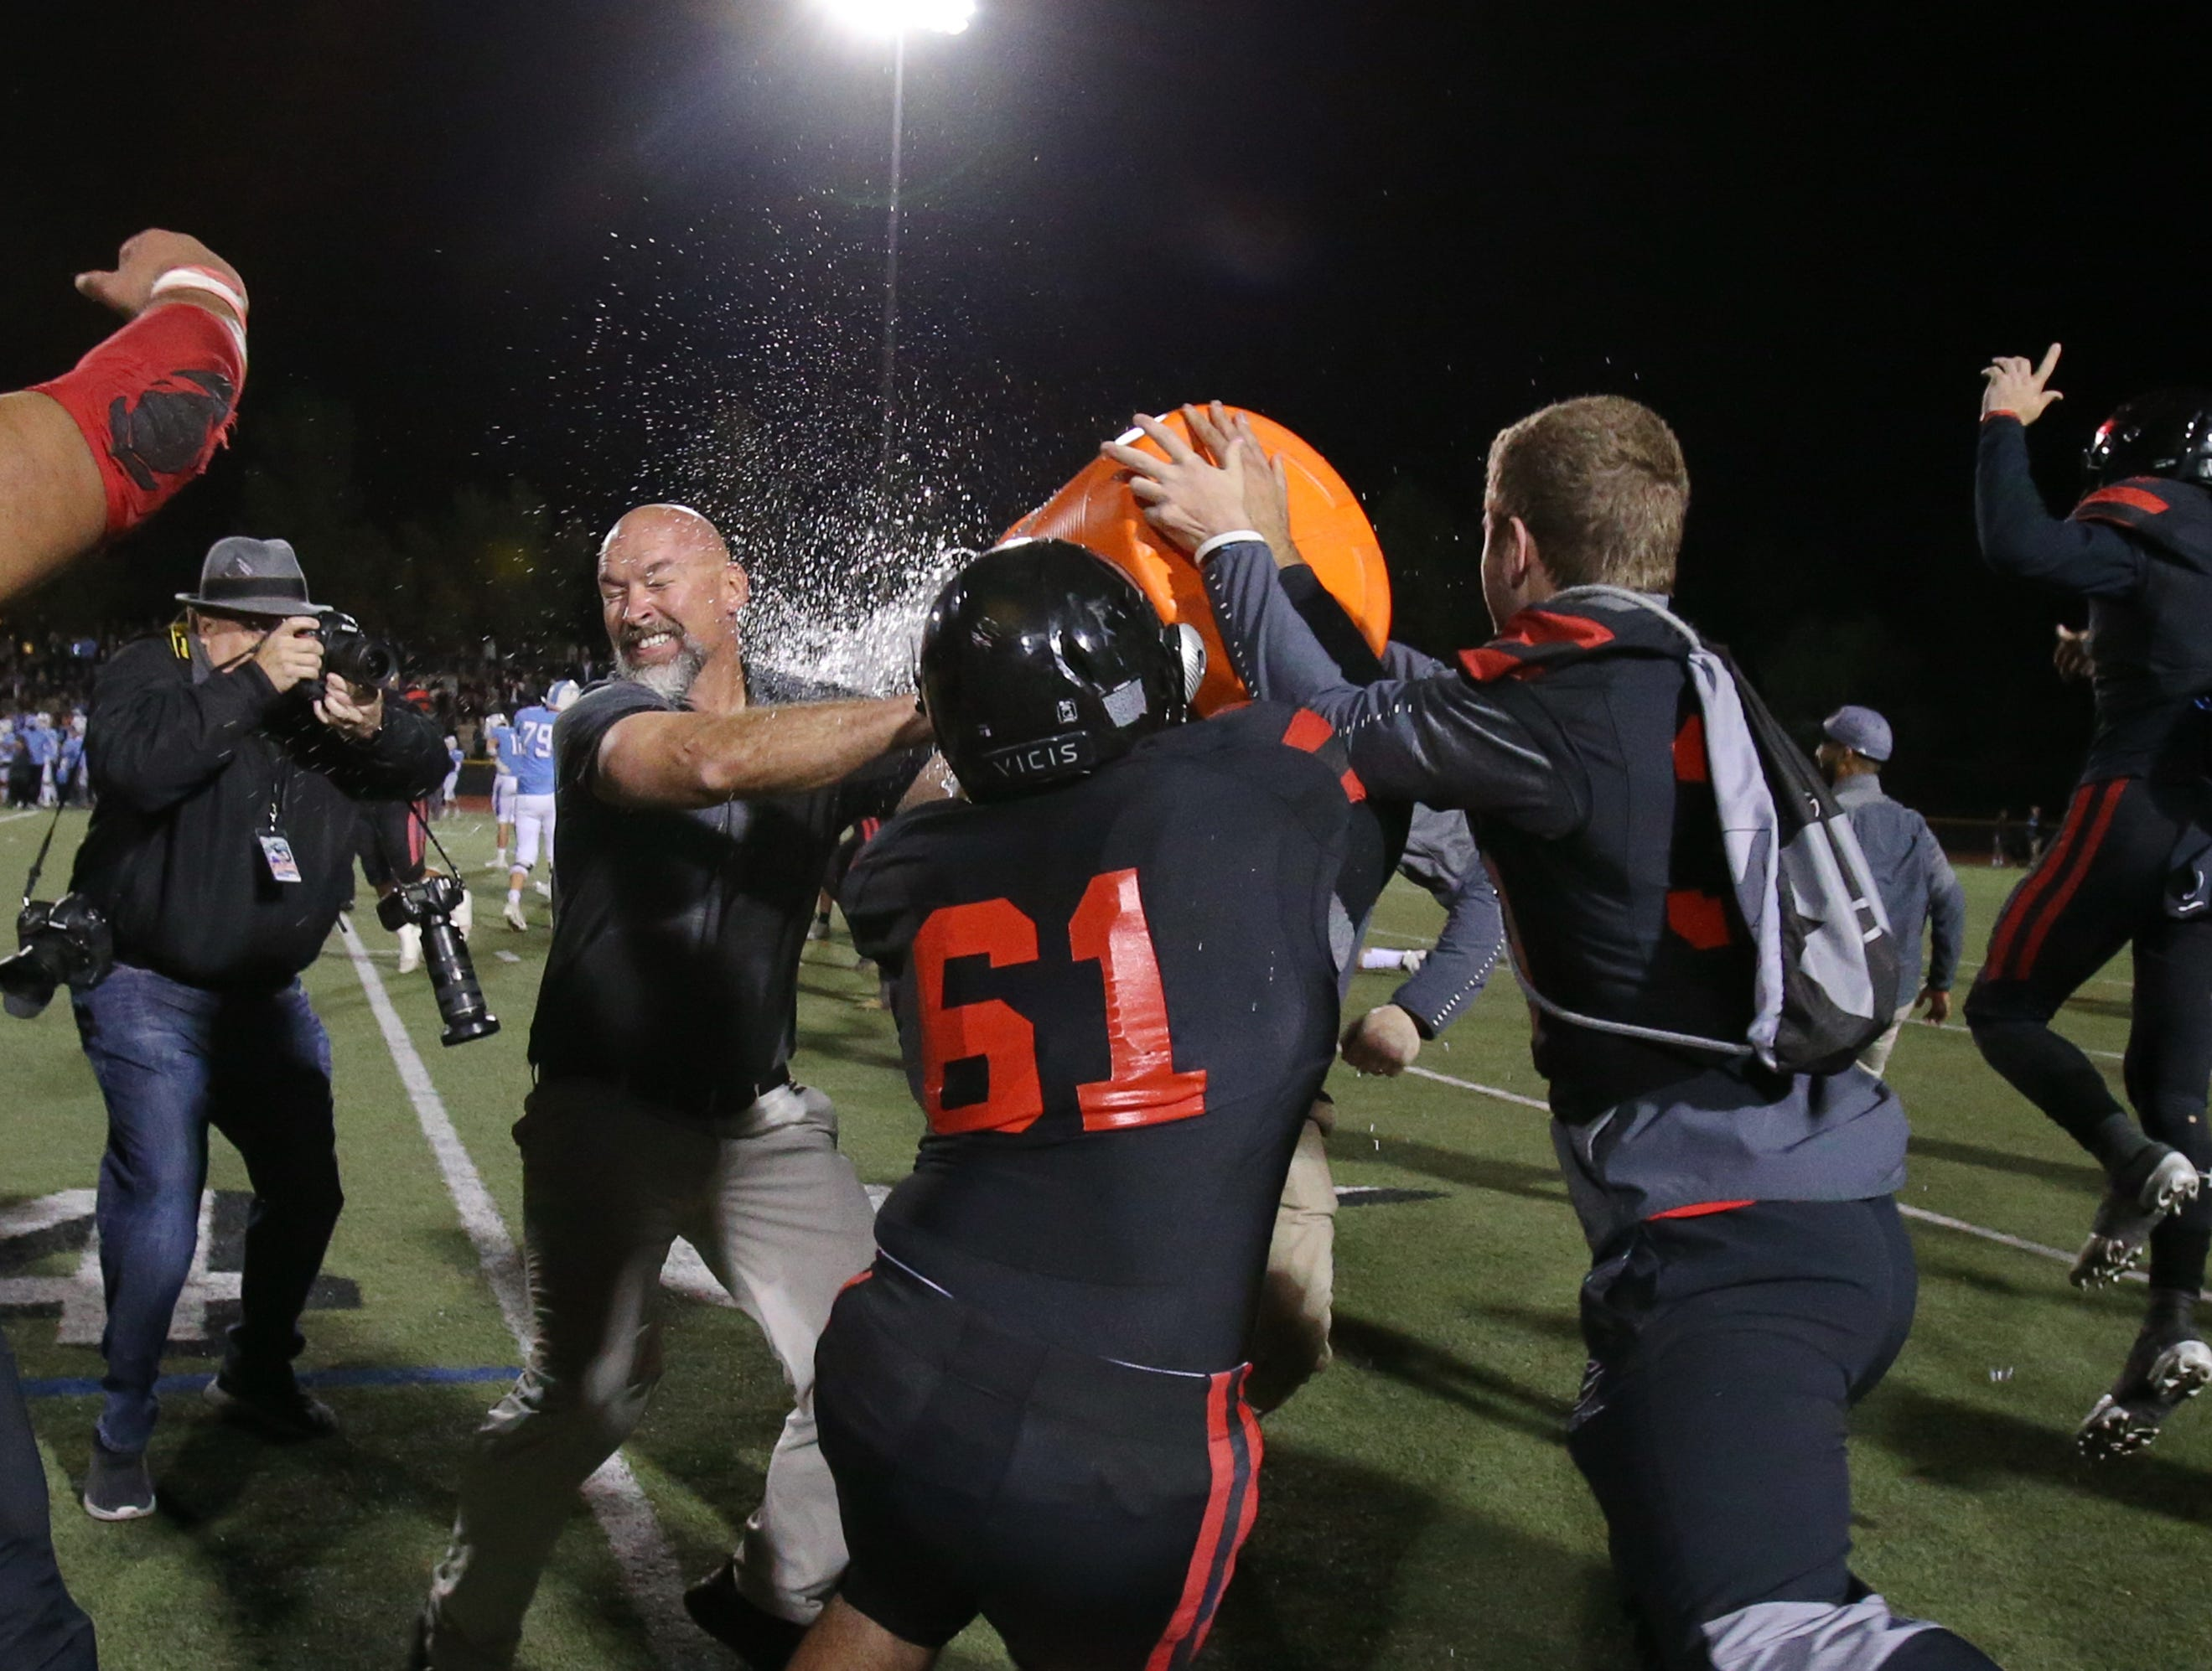 Grace Brethren head coach Josh Henderson gets a Gatorade shower after the Lancers defeated Corona del Mar 26-14 at Royal High on Saturday night to capture the CIF-Southern Section Division 4 championship. It was the second straight CIF title for Grace Brethren, which won the Division 8 title last season.